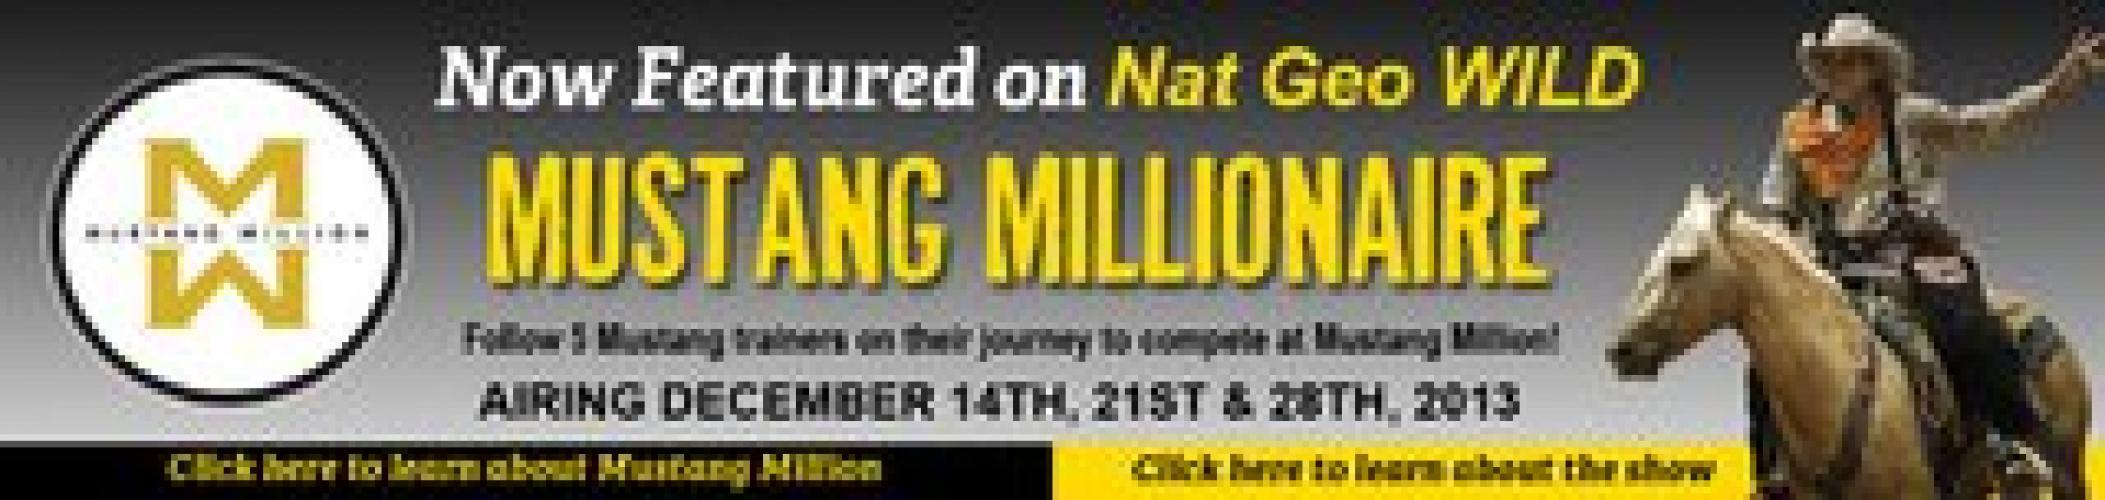 Mustang Millionaire next episode air date poster